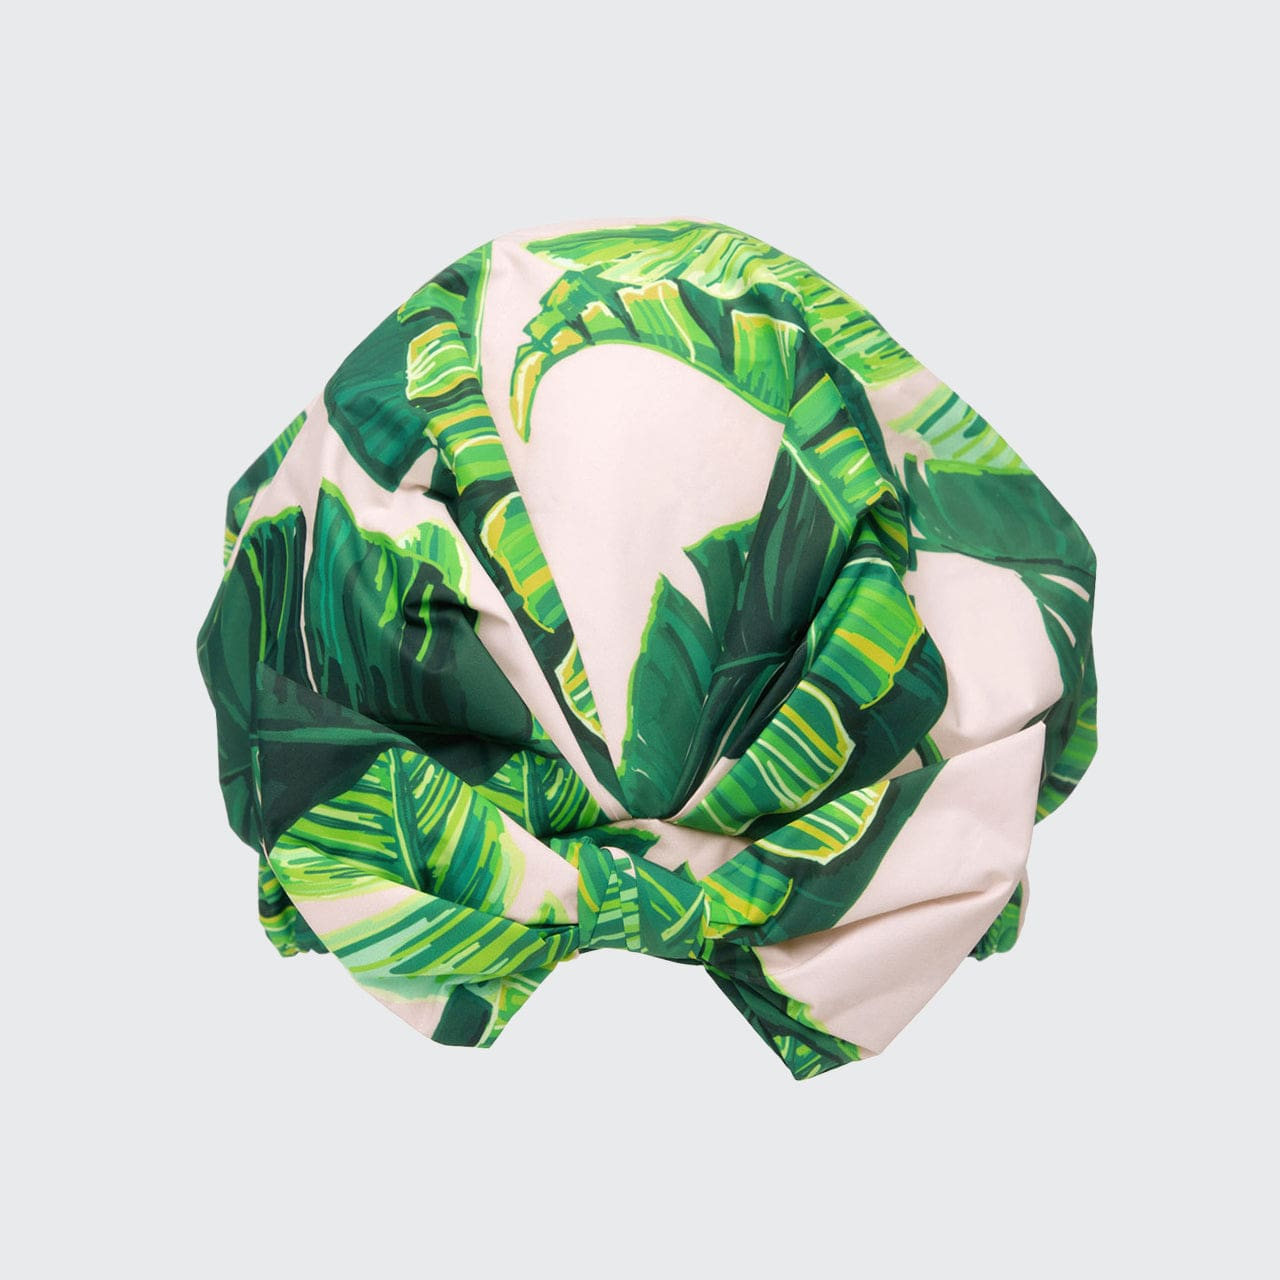 Luxury Shower Cap - Palm Leaves in Recycled Polyester Shower Caps Shower Caps